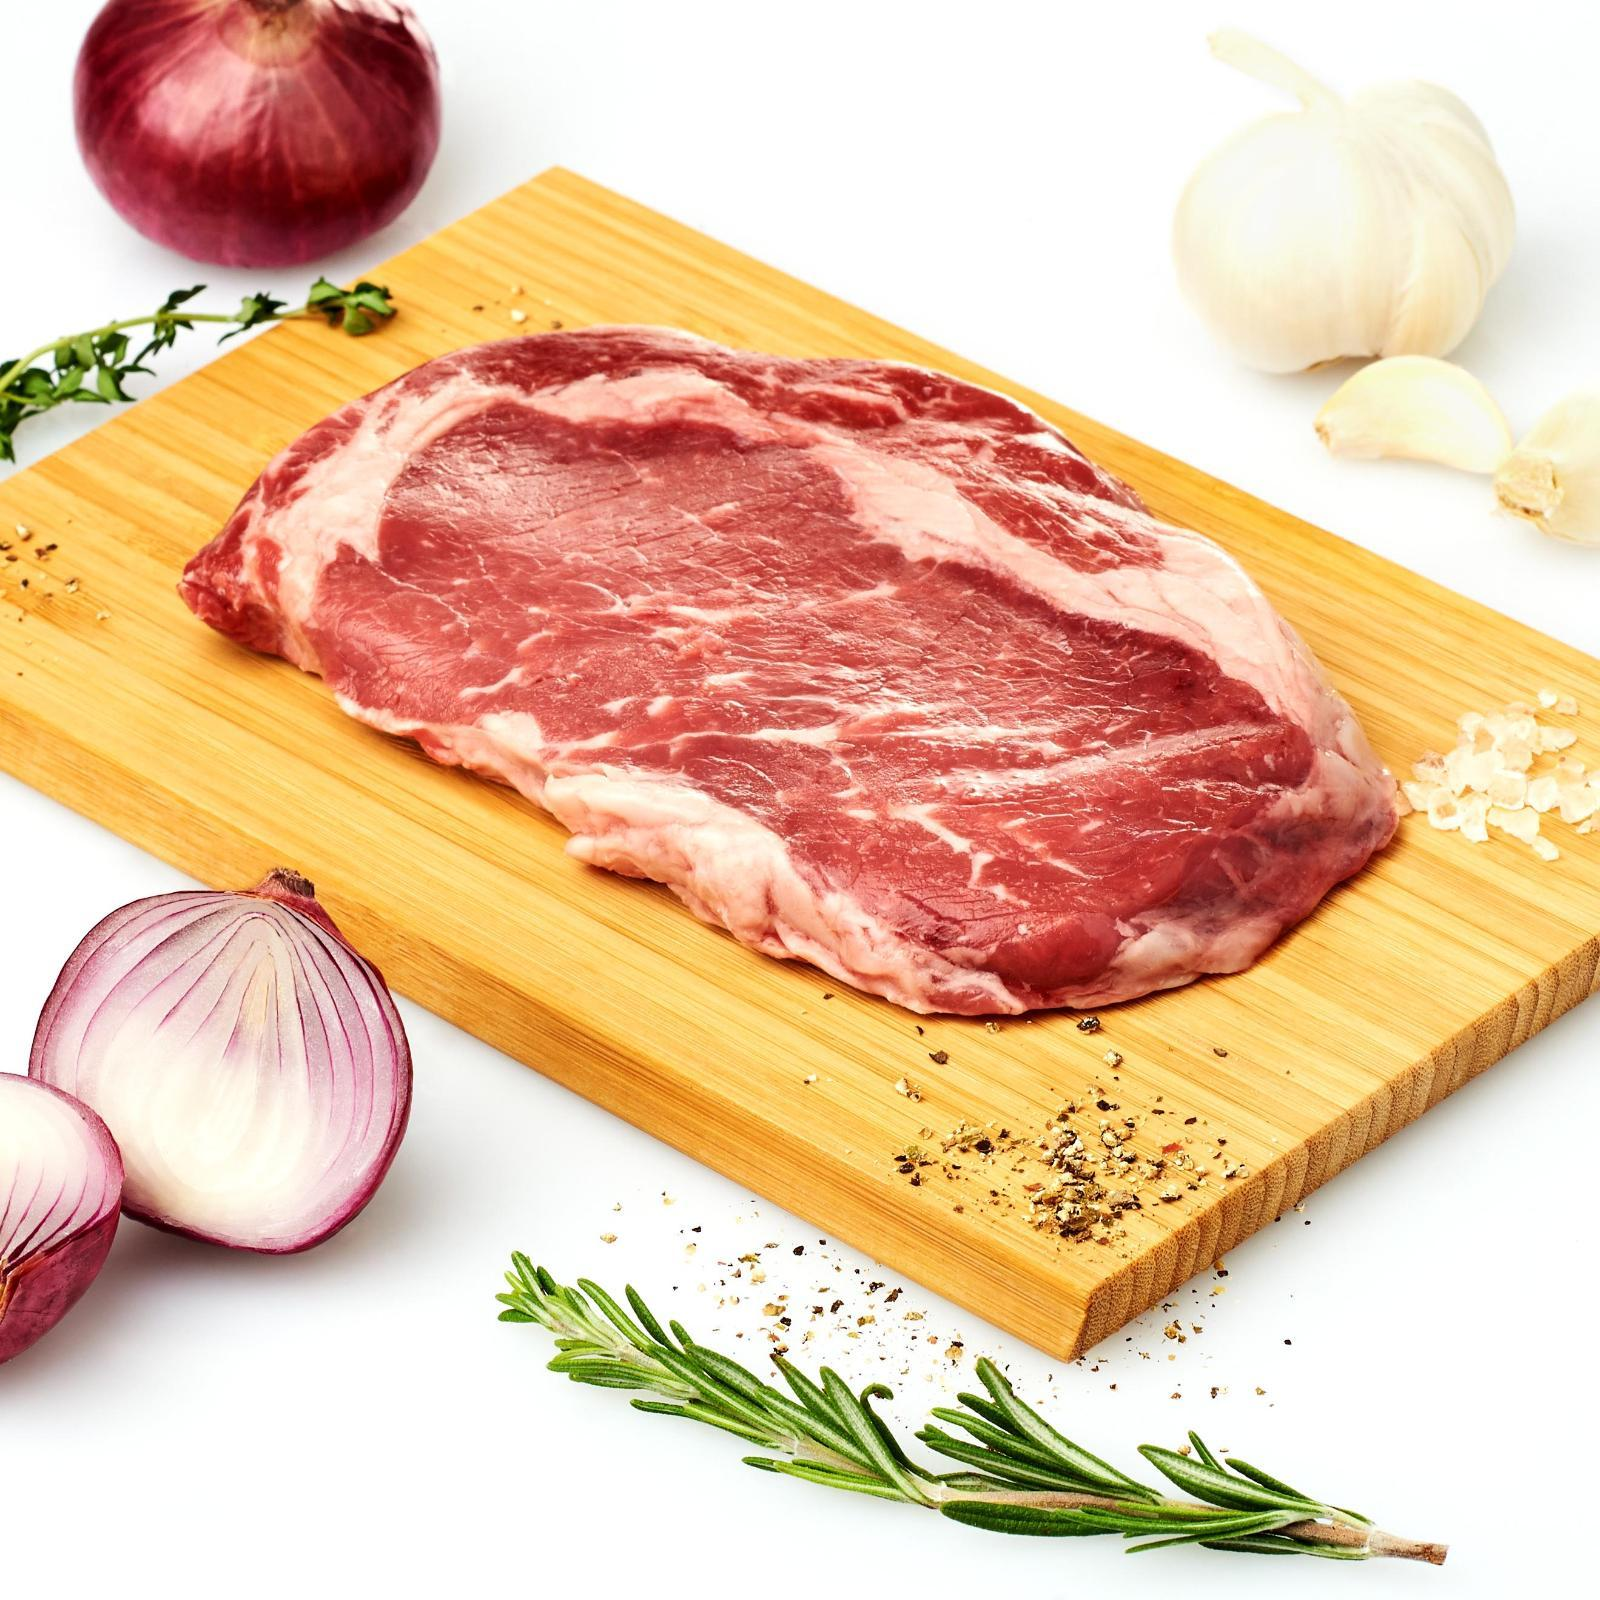 Redmart Grass Fed Ribeye Beef - Australia By Redmart.